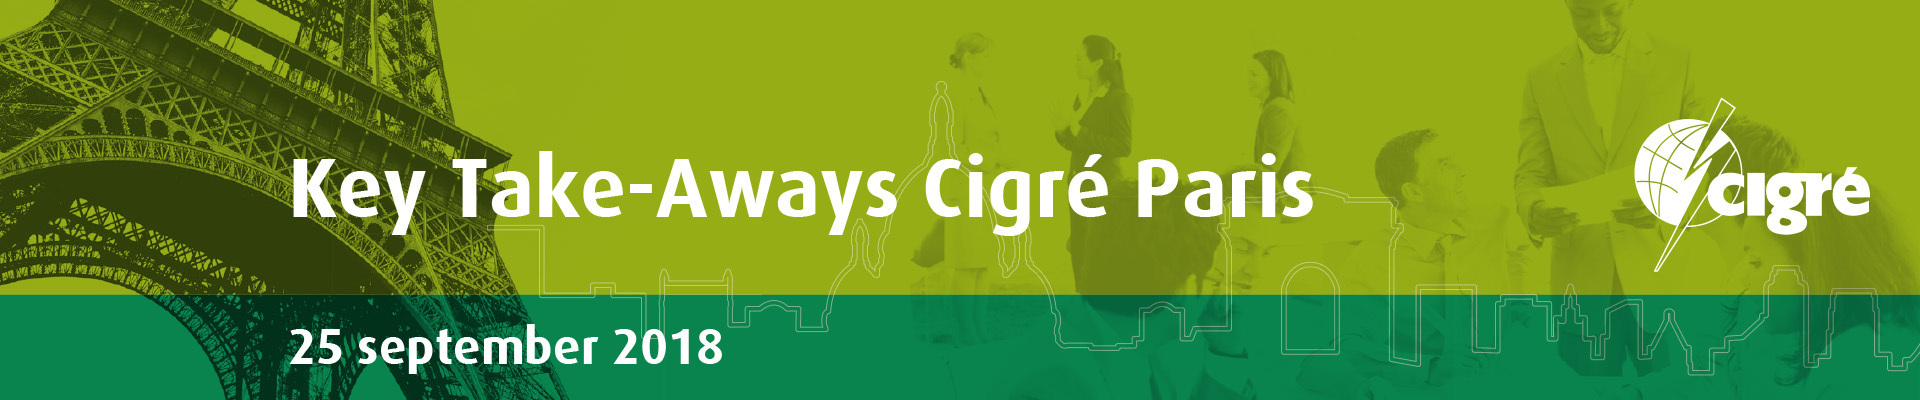 Key Take-Aways Cigre Paris